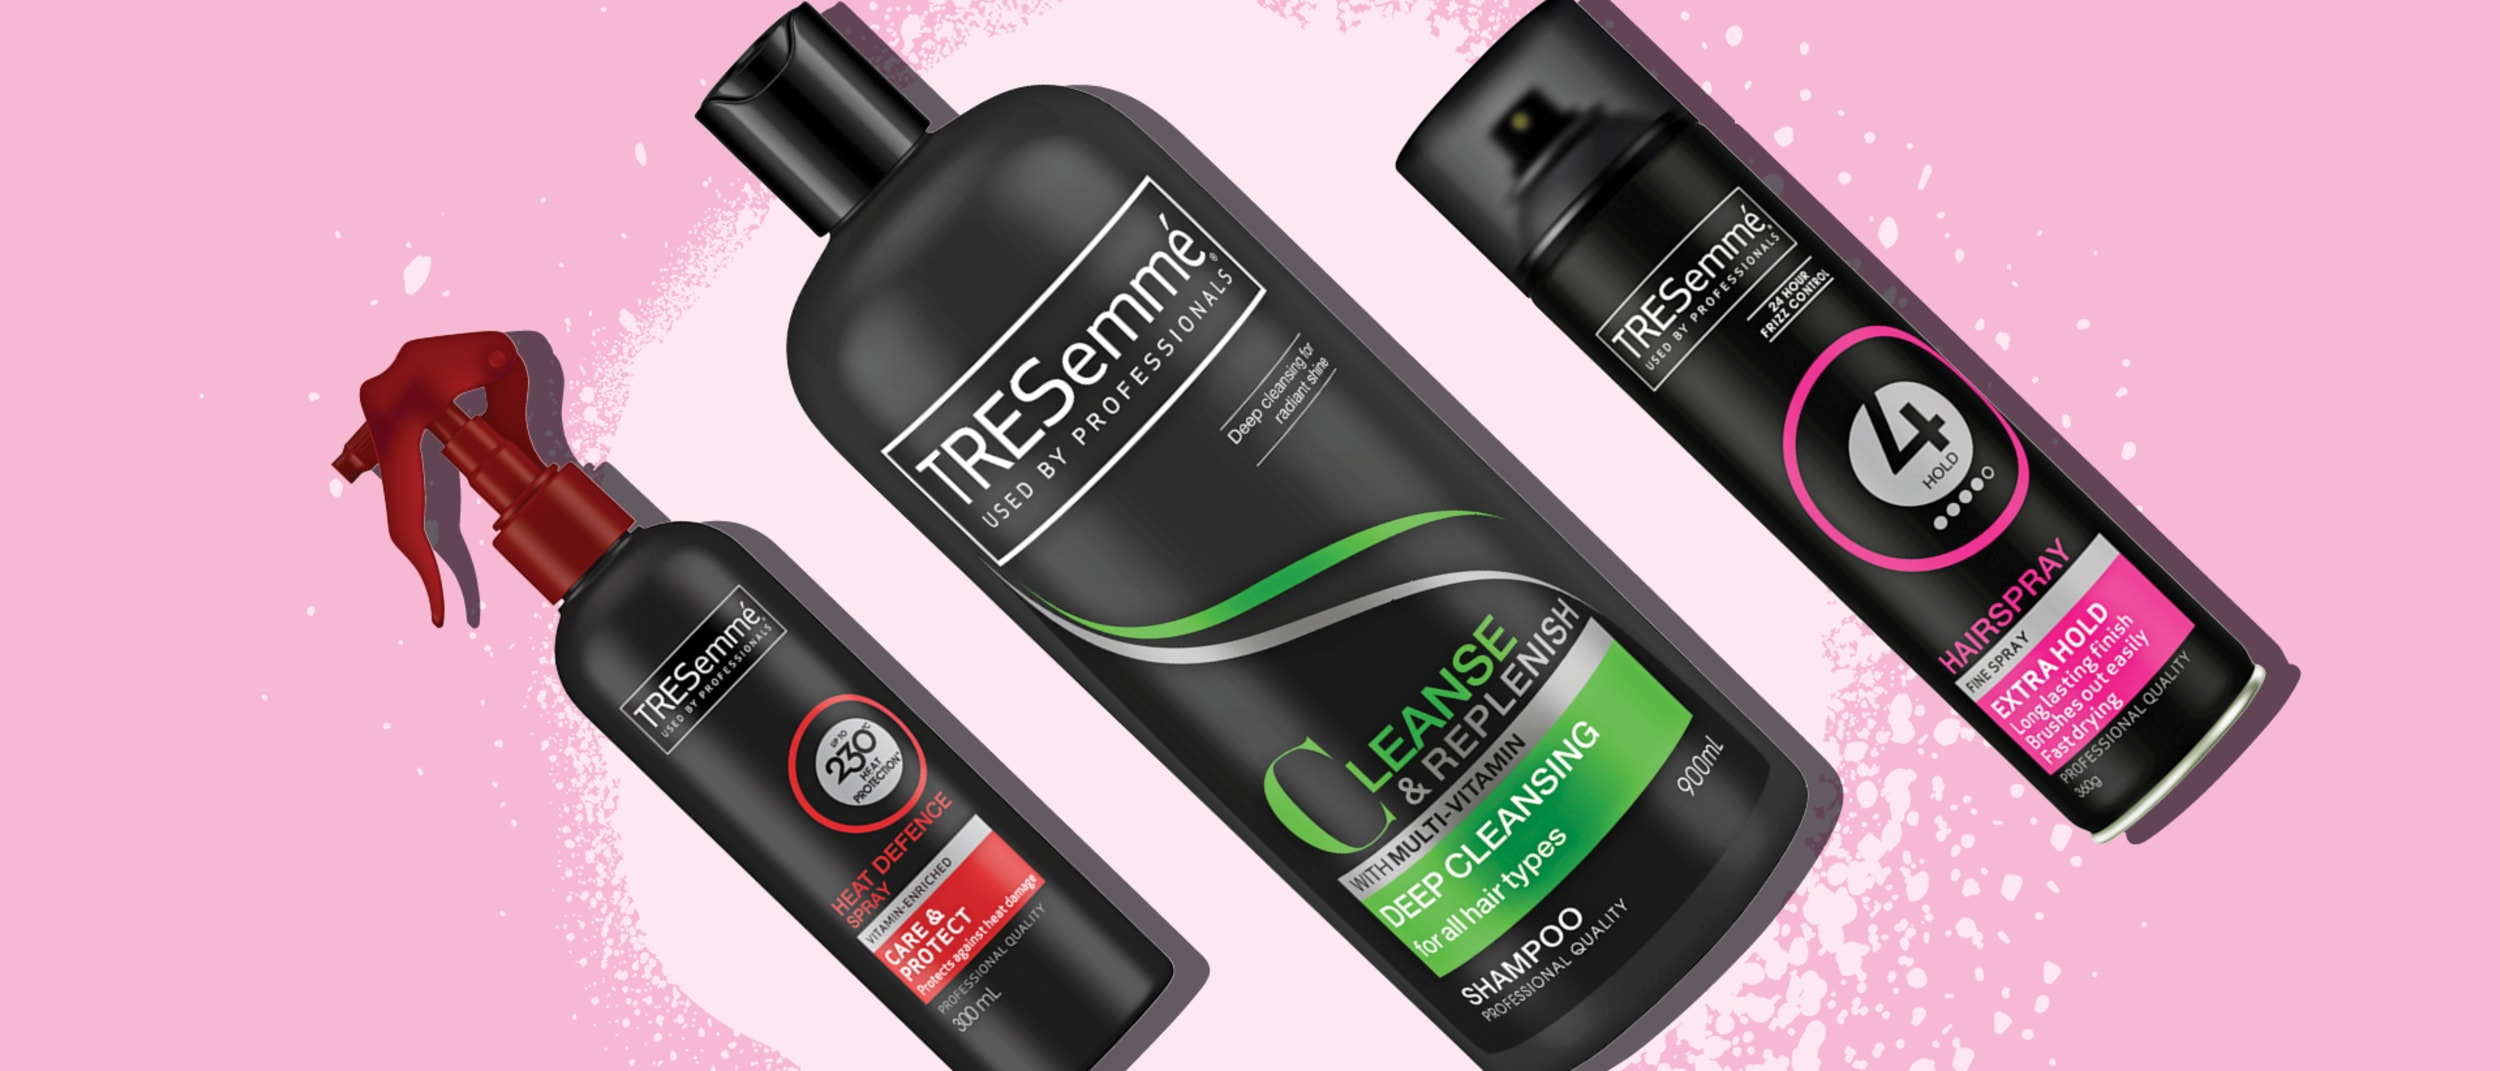 ½ Price on the Tresemme Haircare and Styling ranges